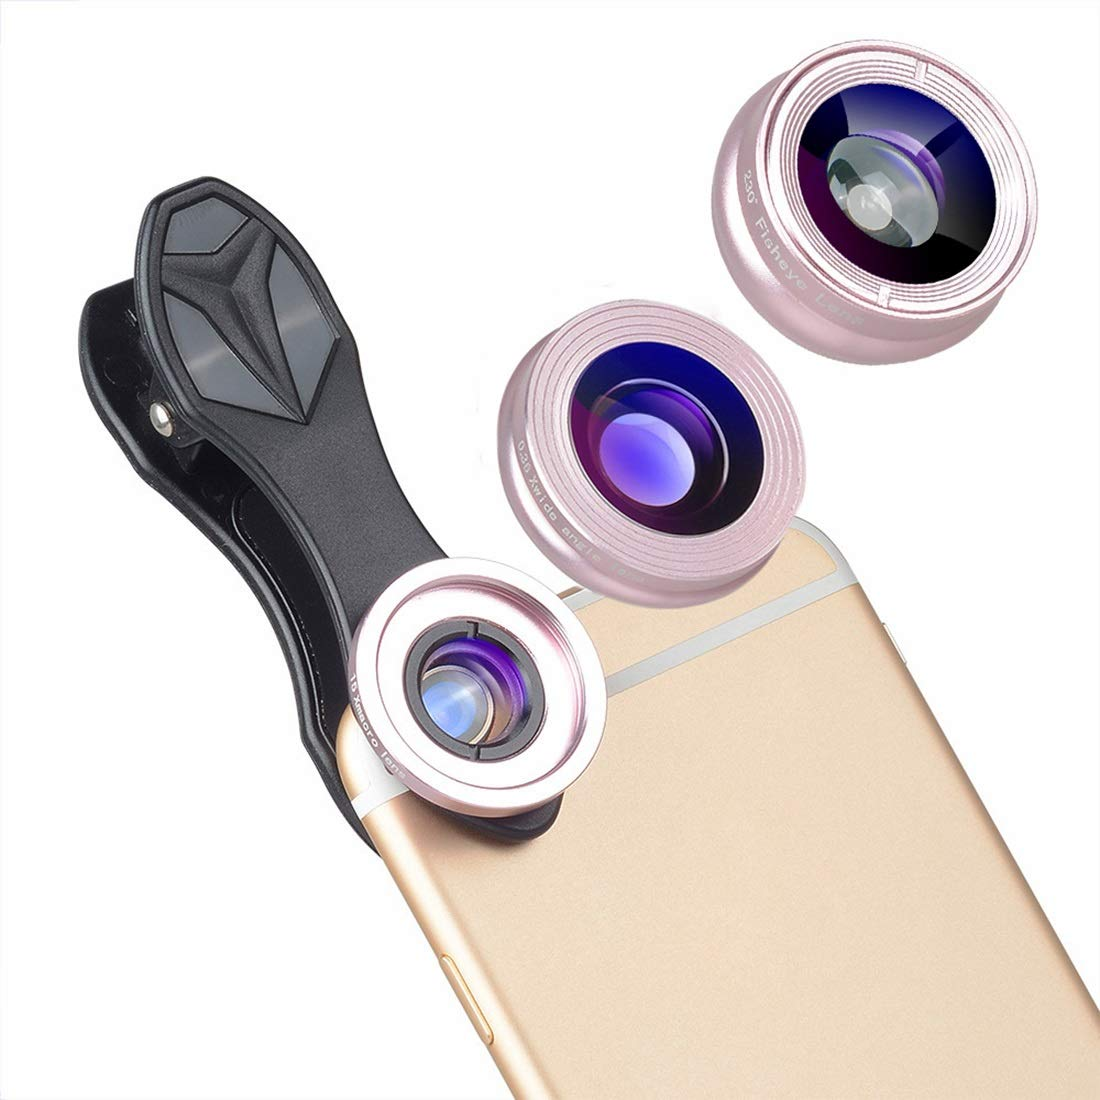 KEYI 3in1 Cell Phone Camera Lens Kit Wide Angle&Macro Lens 230° Eyefish Lens for Most Smartphones and Tablets Lens (Color : Gold) by KEYI